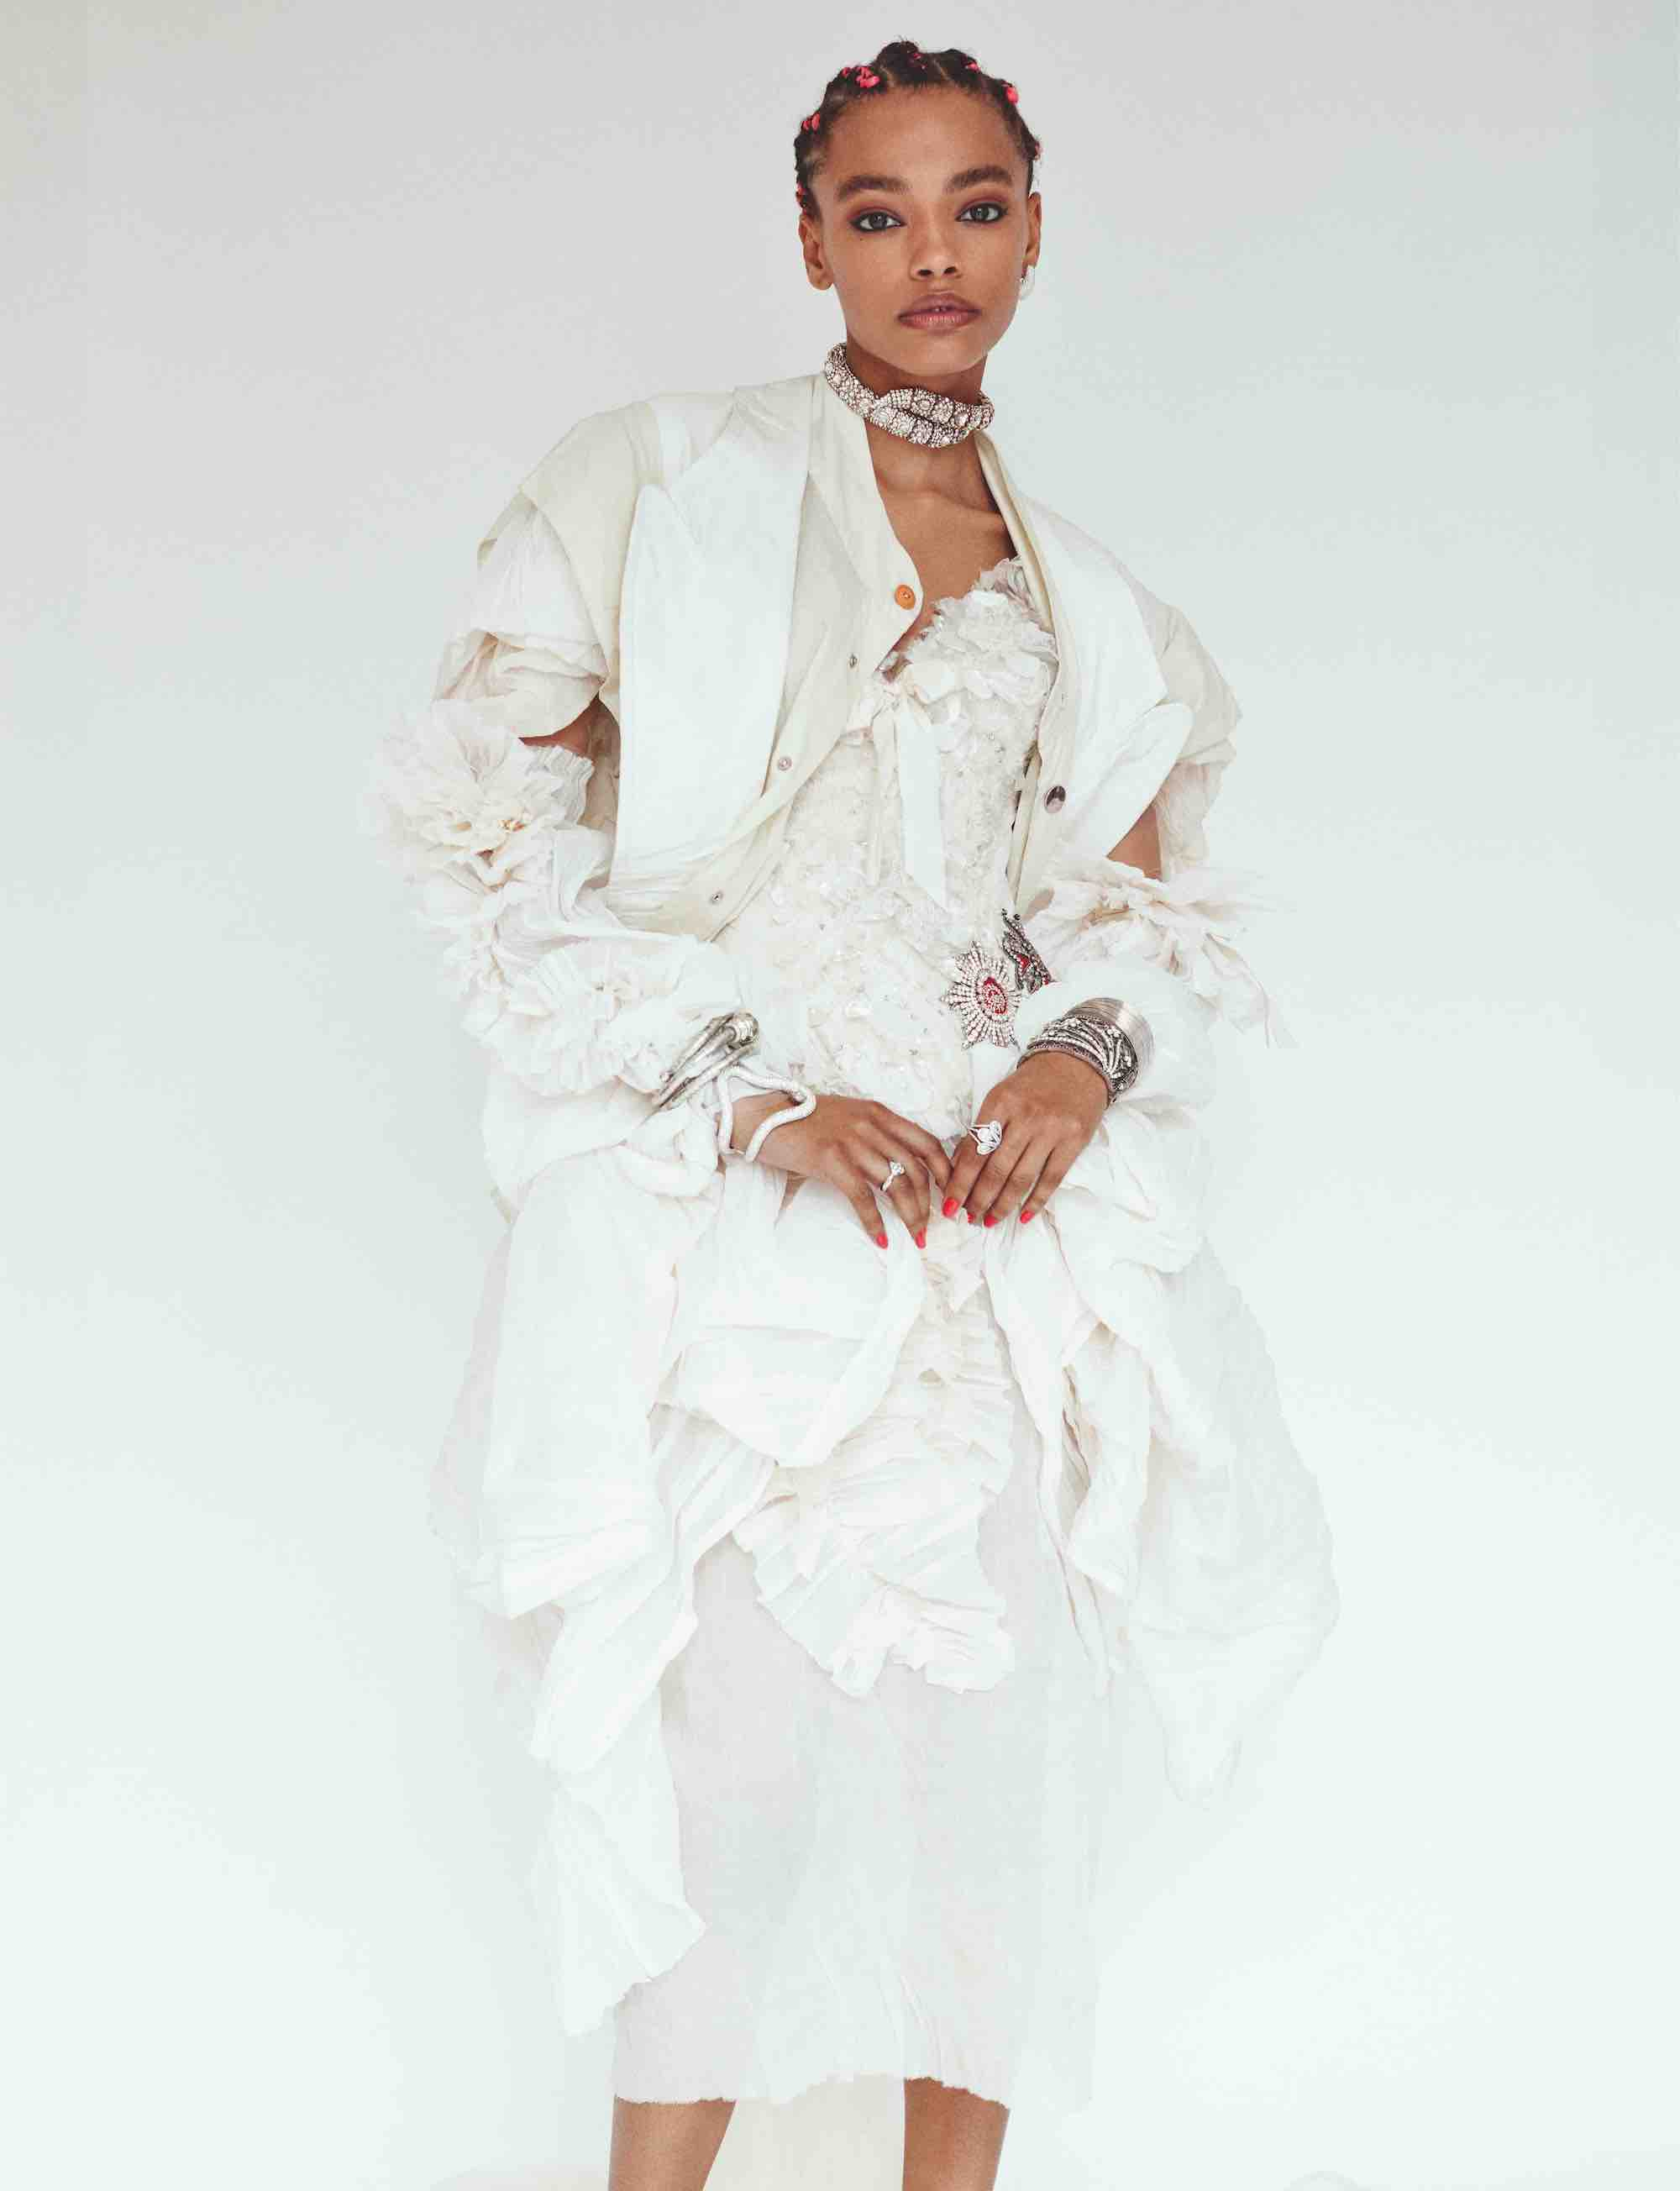 Heaven Phase 1 fashion editorial for Wonderland Summer 19 issue white outfit